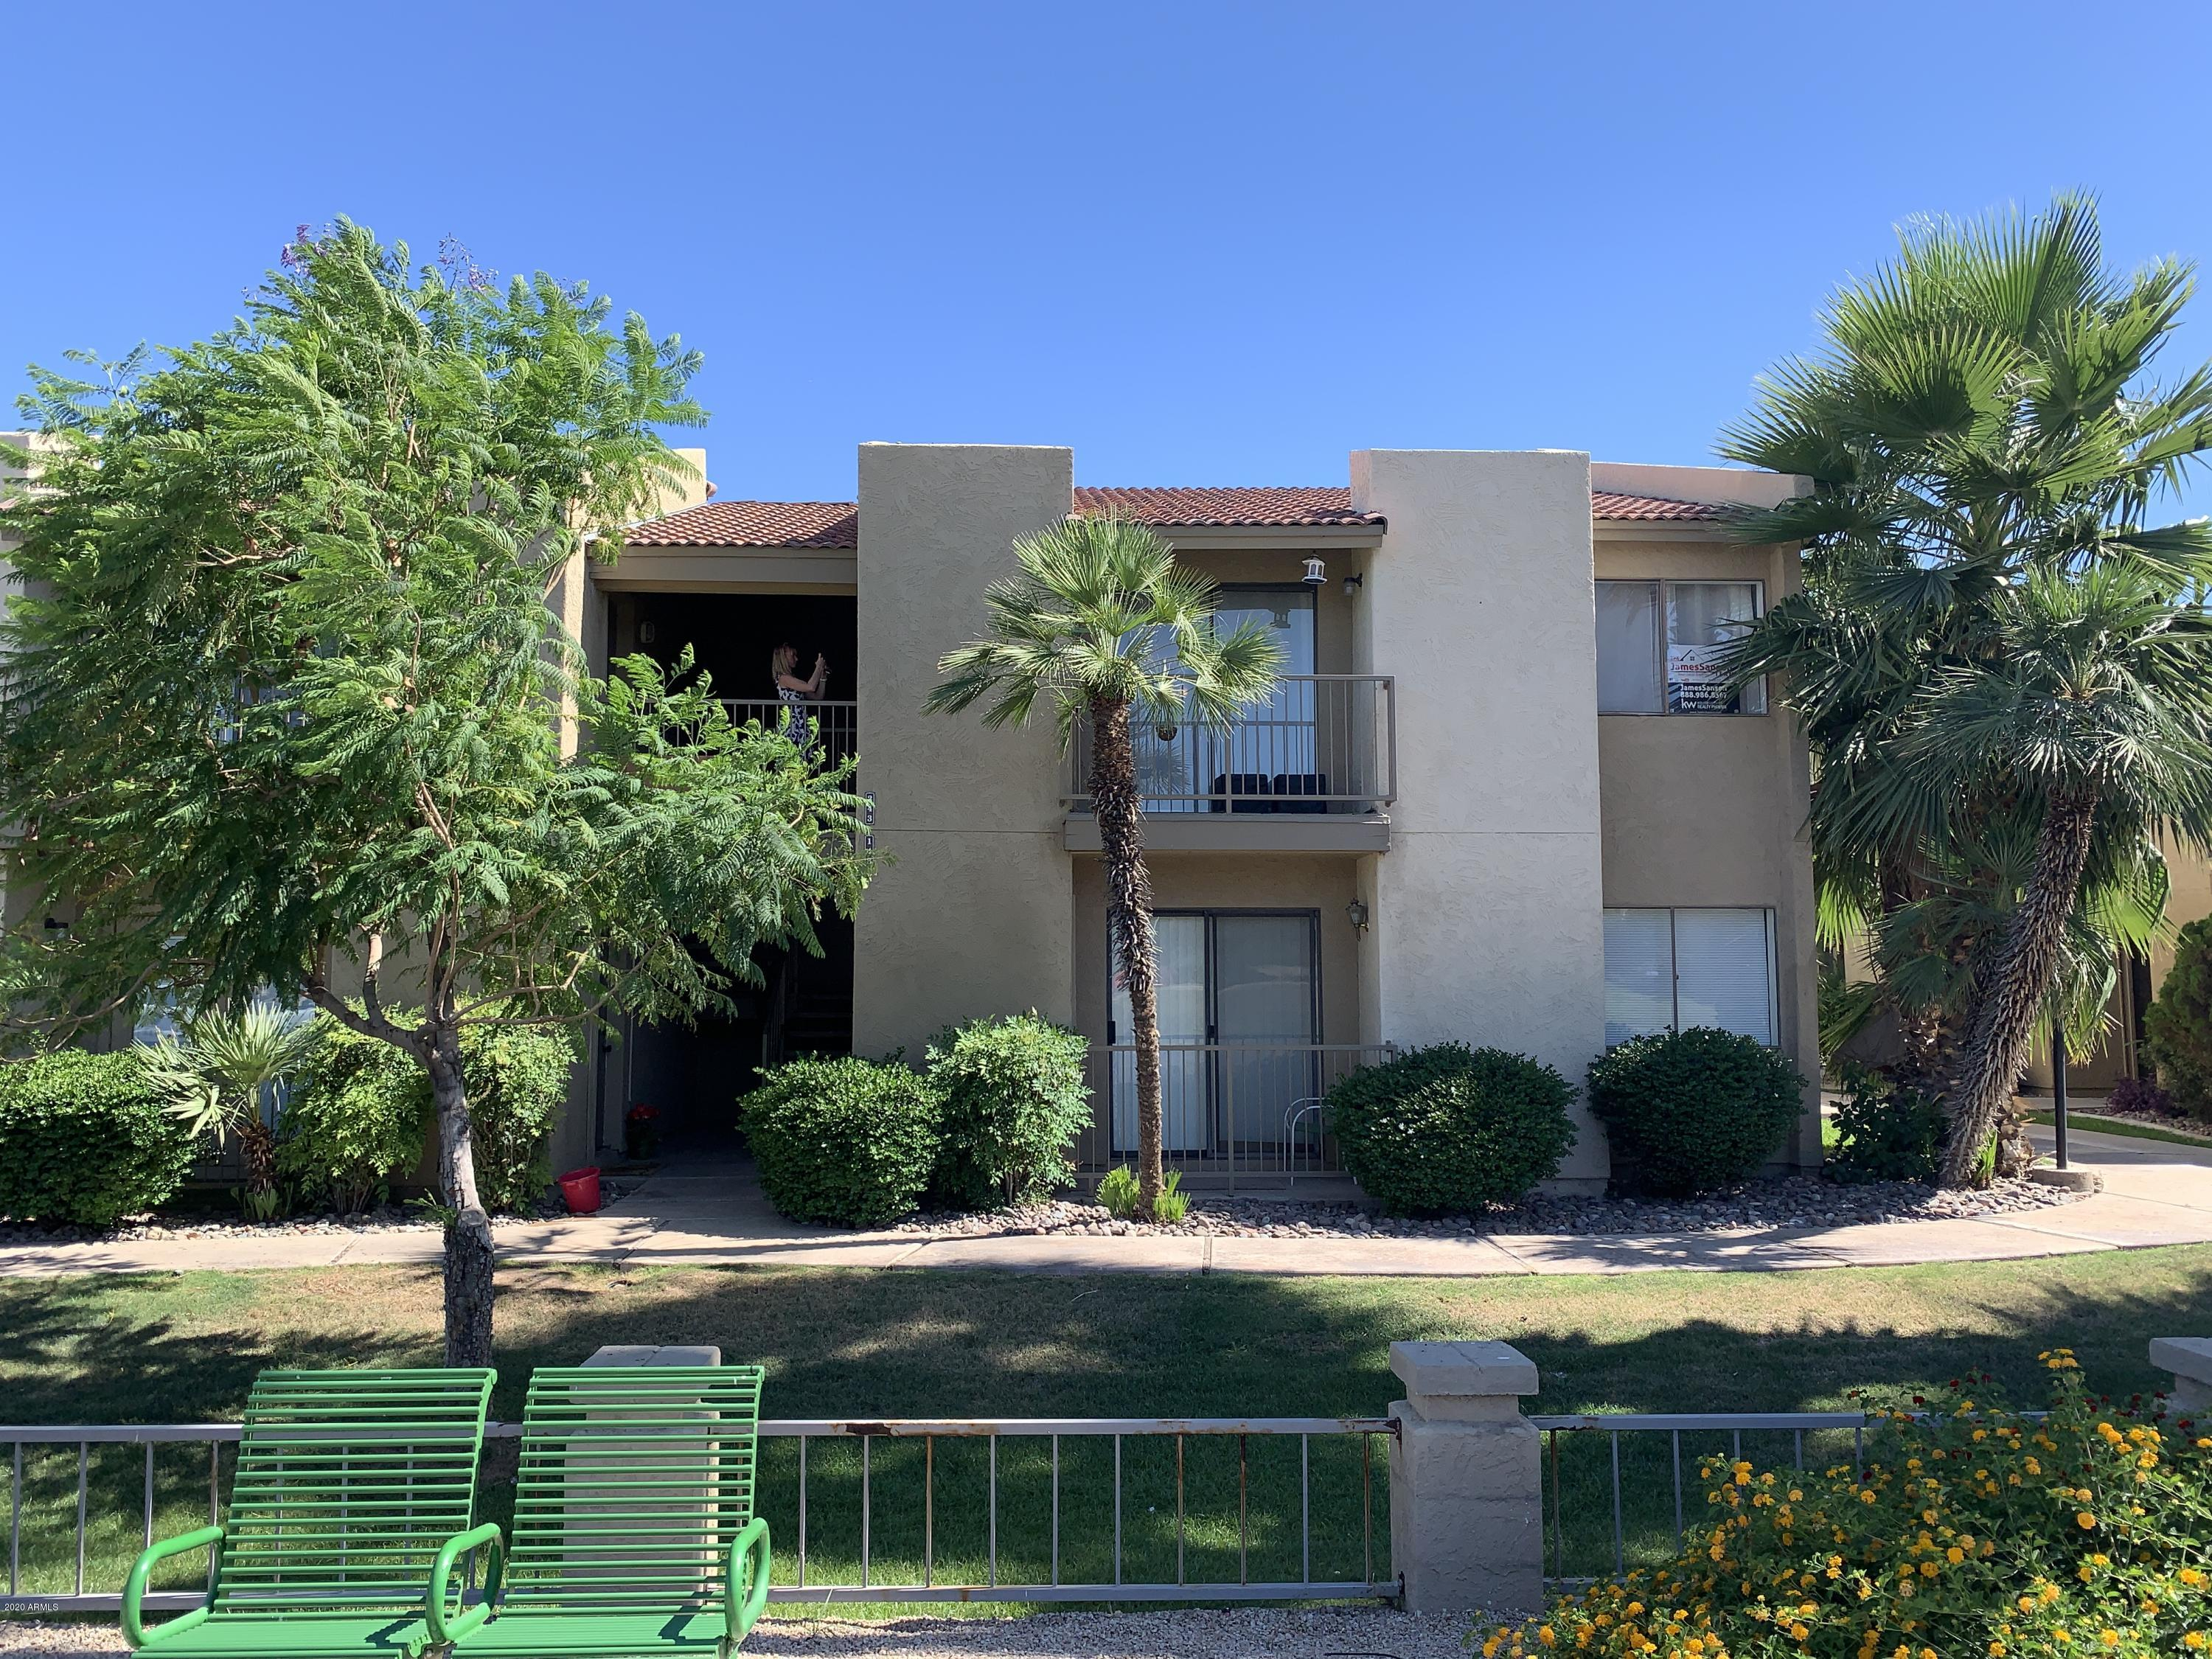 Photo of 1111 E UNIVERSITY Drive #243, Tempe, AZ 85281